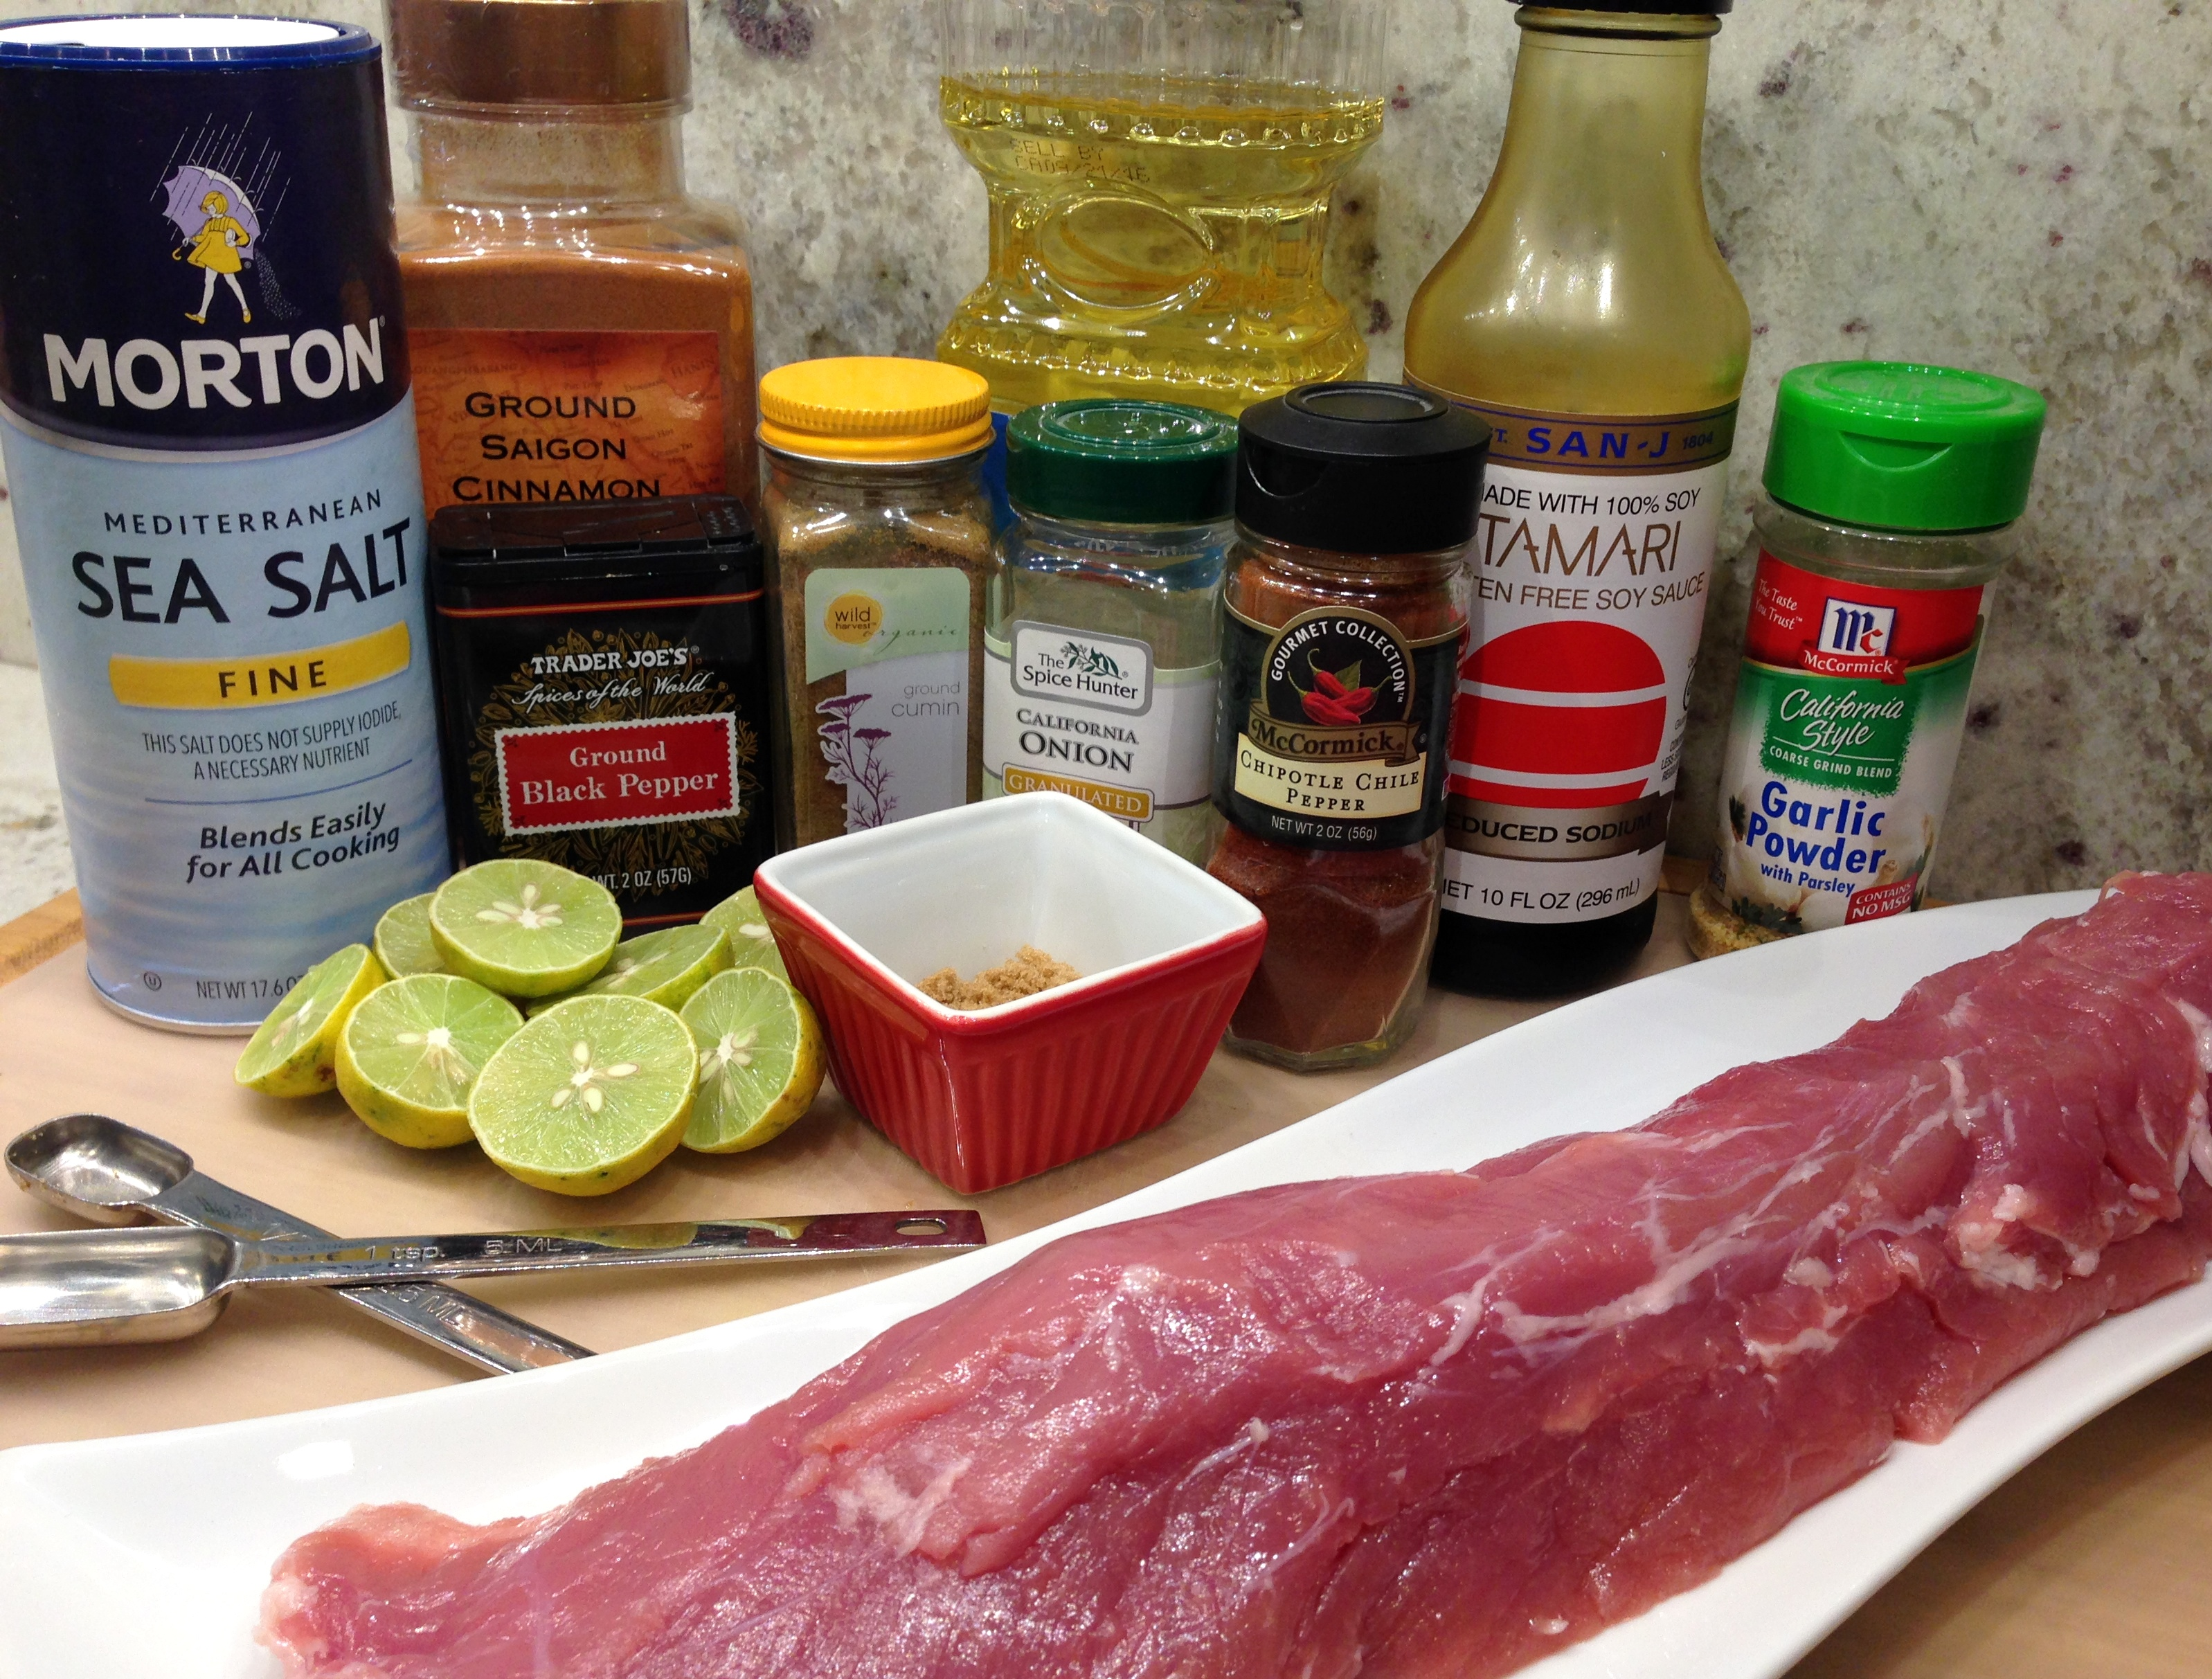 Chili Lime Pork Loin Ingredients